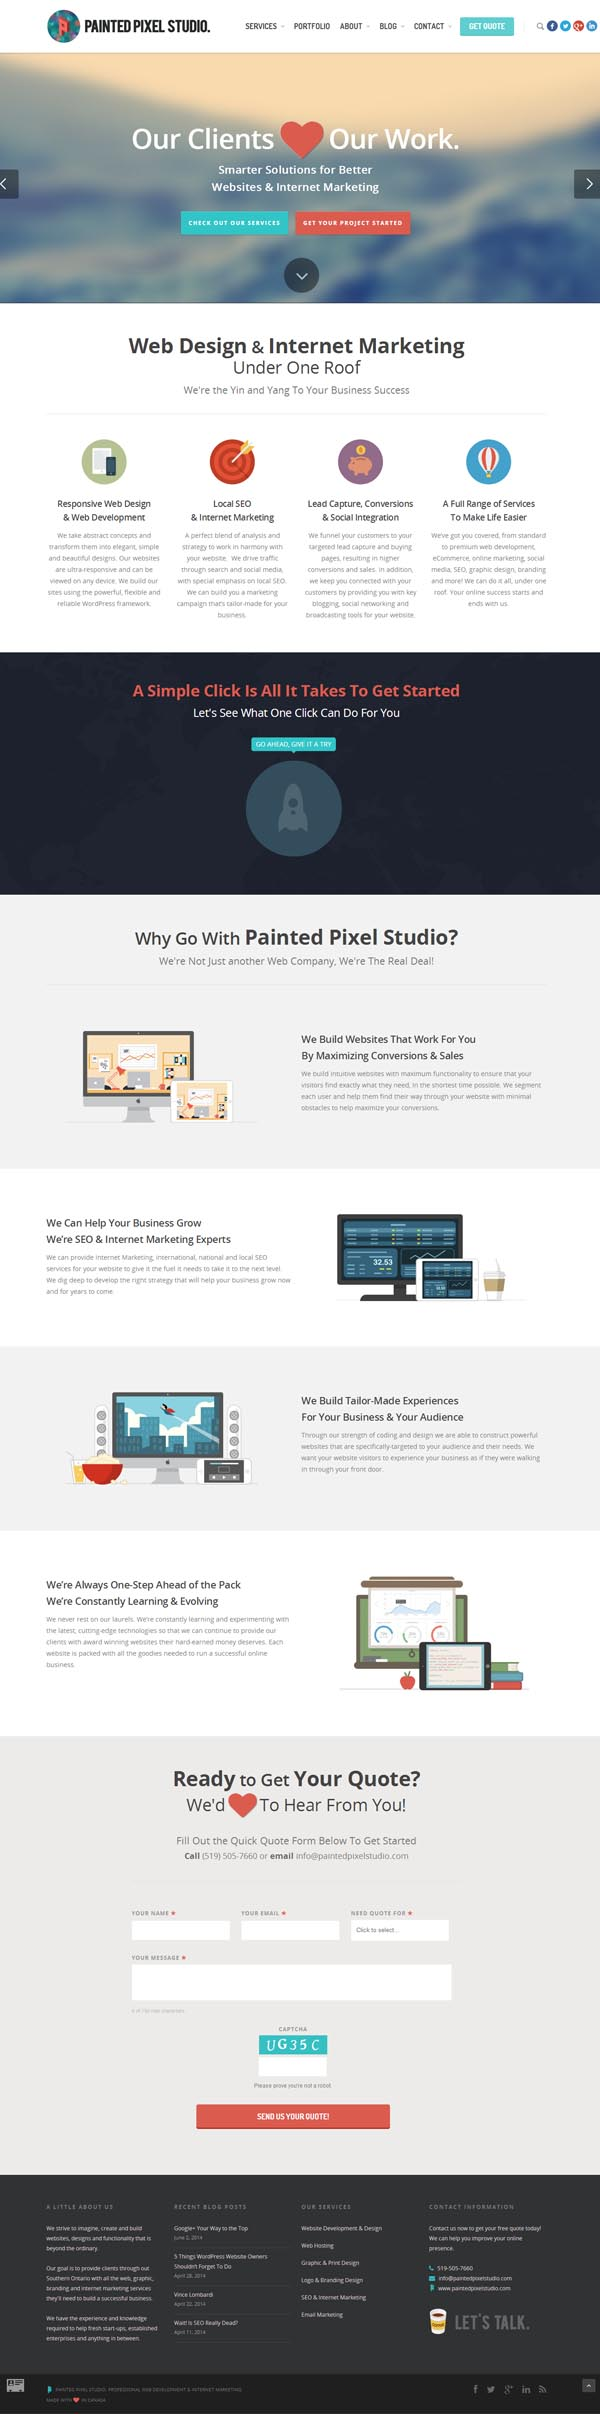 Painted Pixel Studio